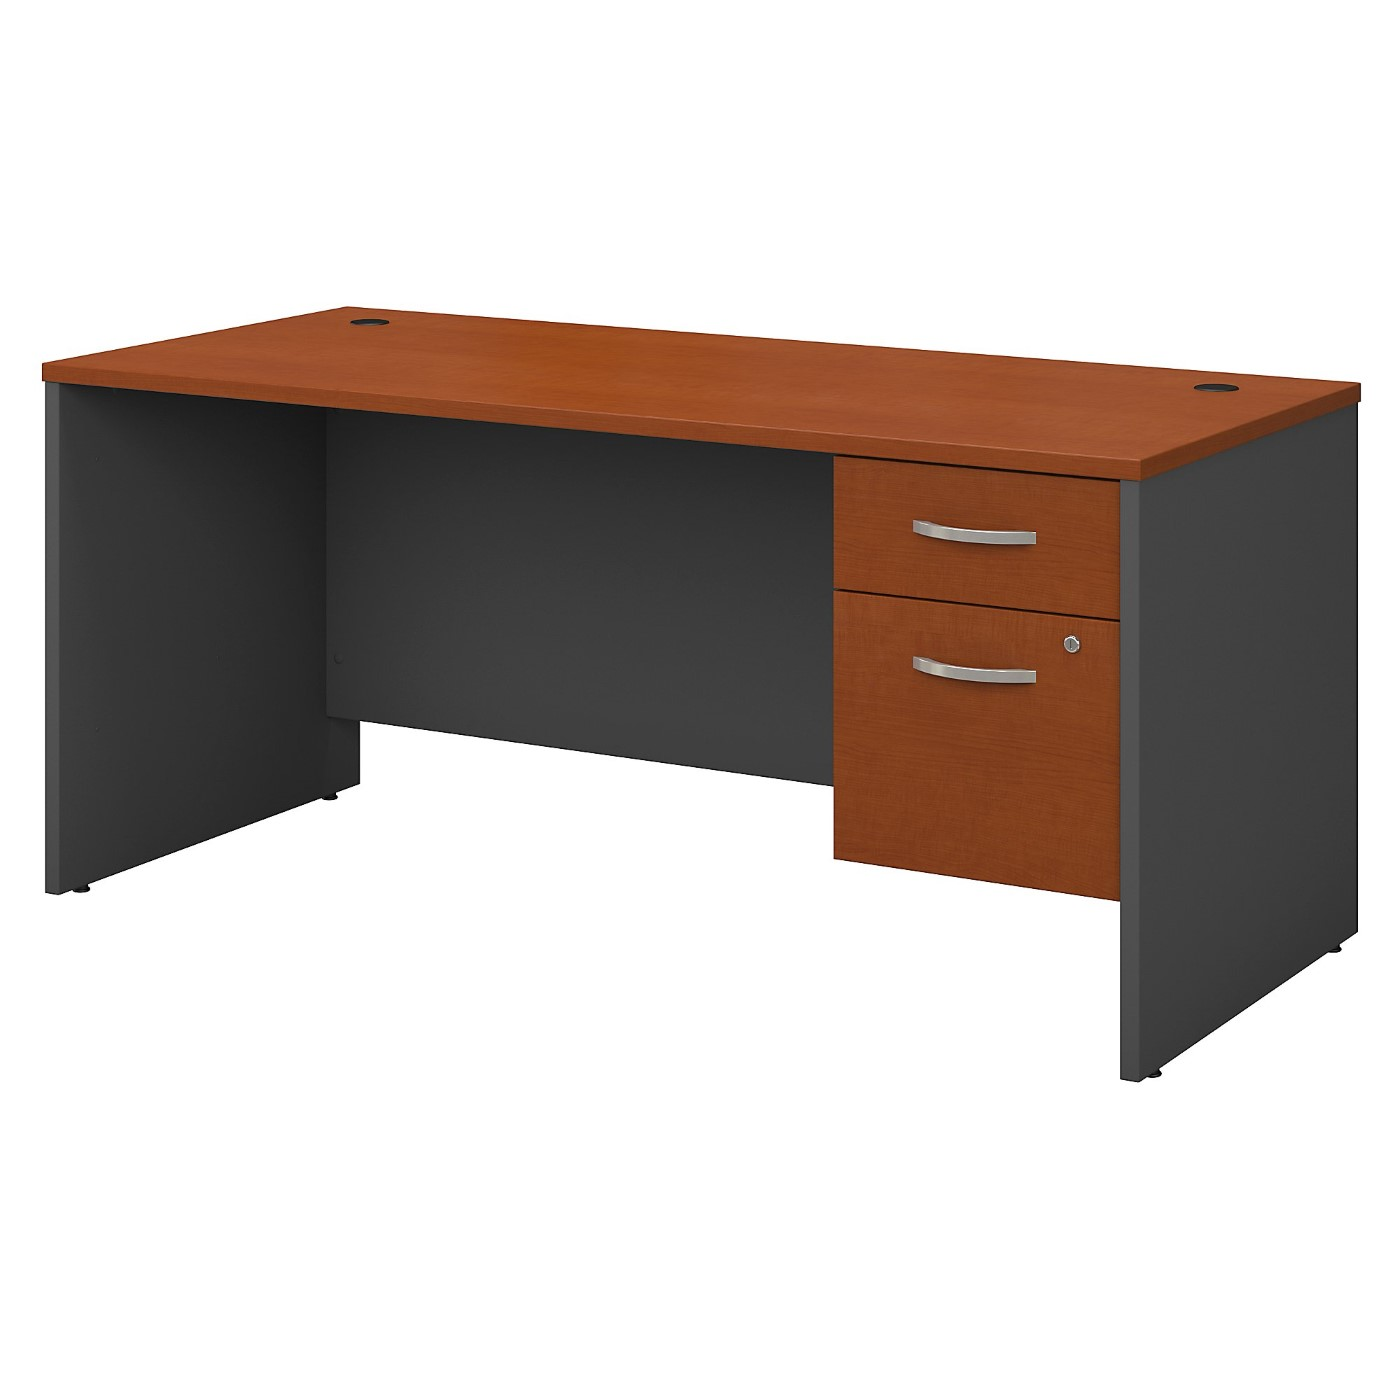 BUSH BUSINESS FURNITURE SERIES C 66W X 30D OFFICE DESK WITH 3/4 PEDESTAL. FREE SHIPPING SALE DEDUCT 10% MORE ENTER '10percent' IN COUPON CODE BOX WHILE CHECKING OUT.